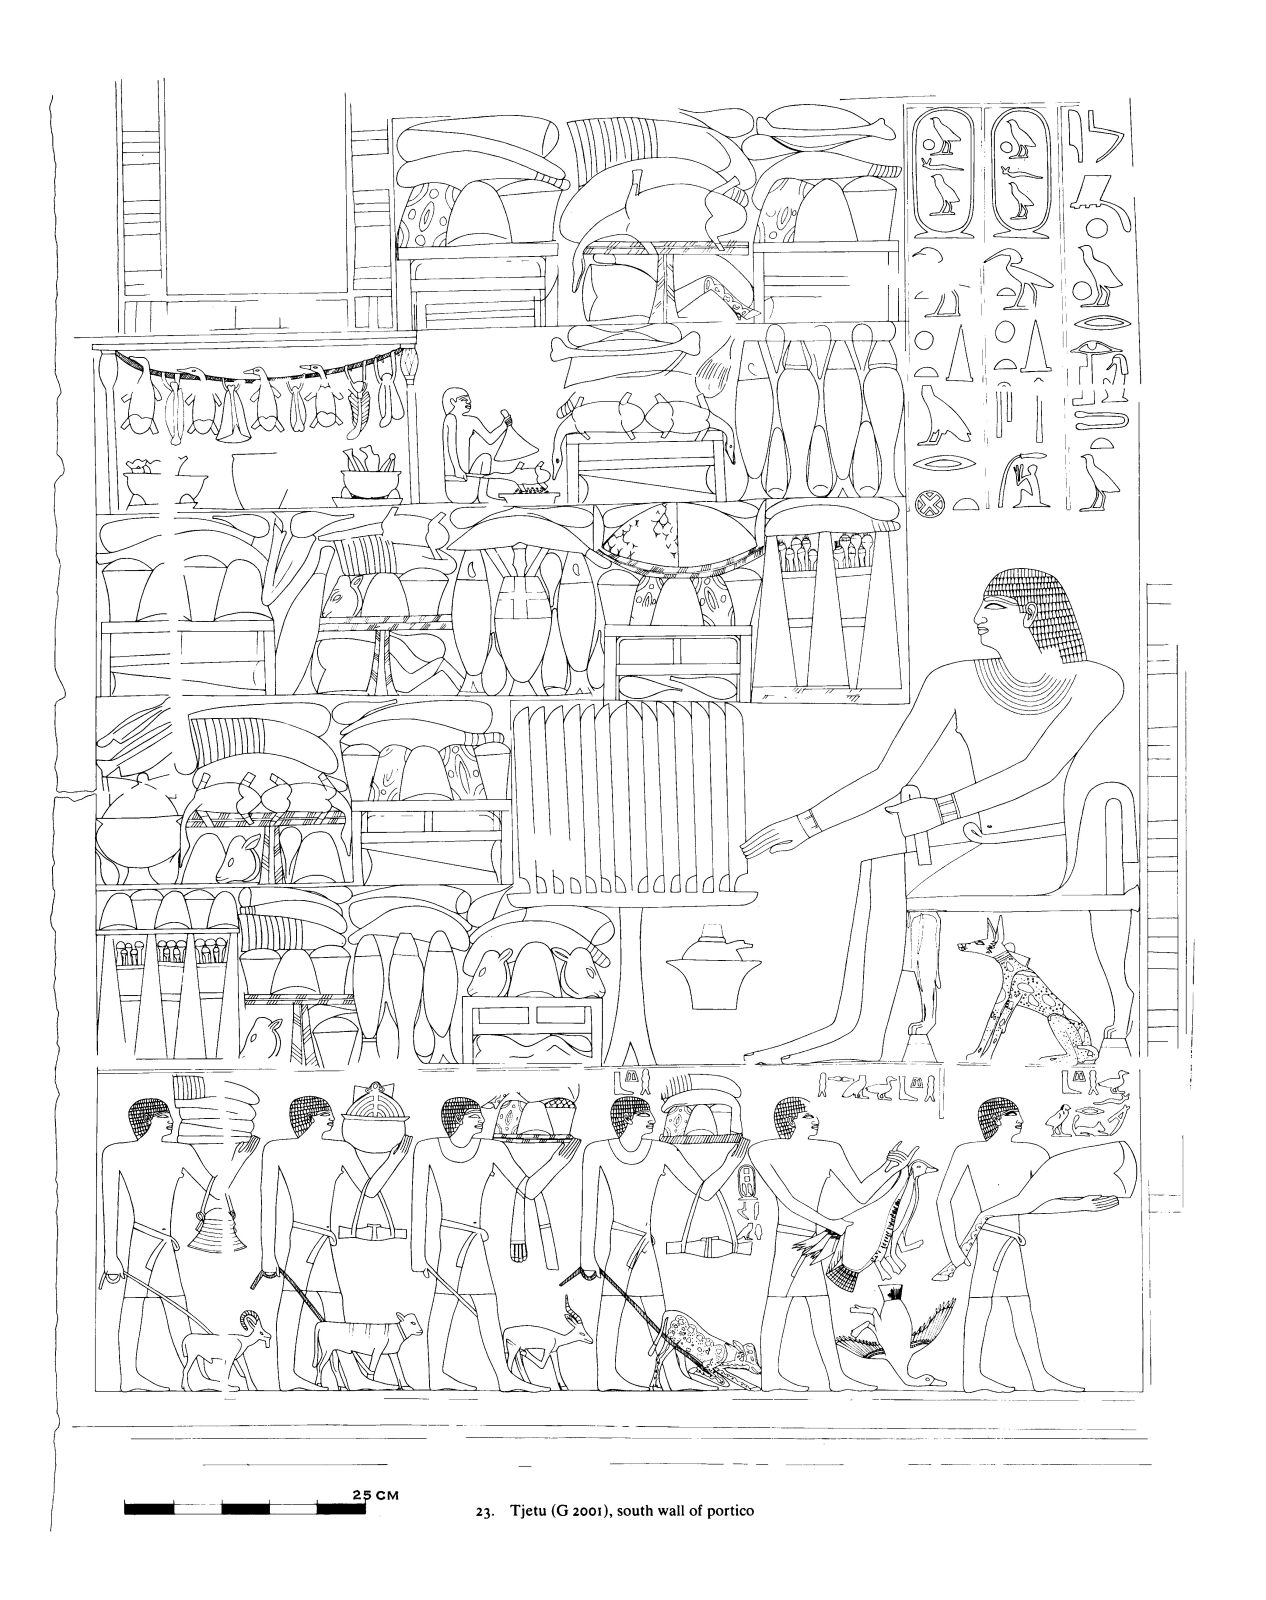 Drawings: G 2001: relief from portico, S wall